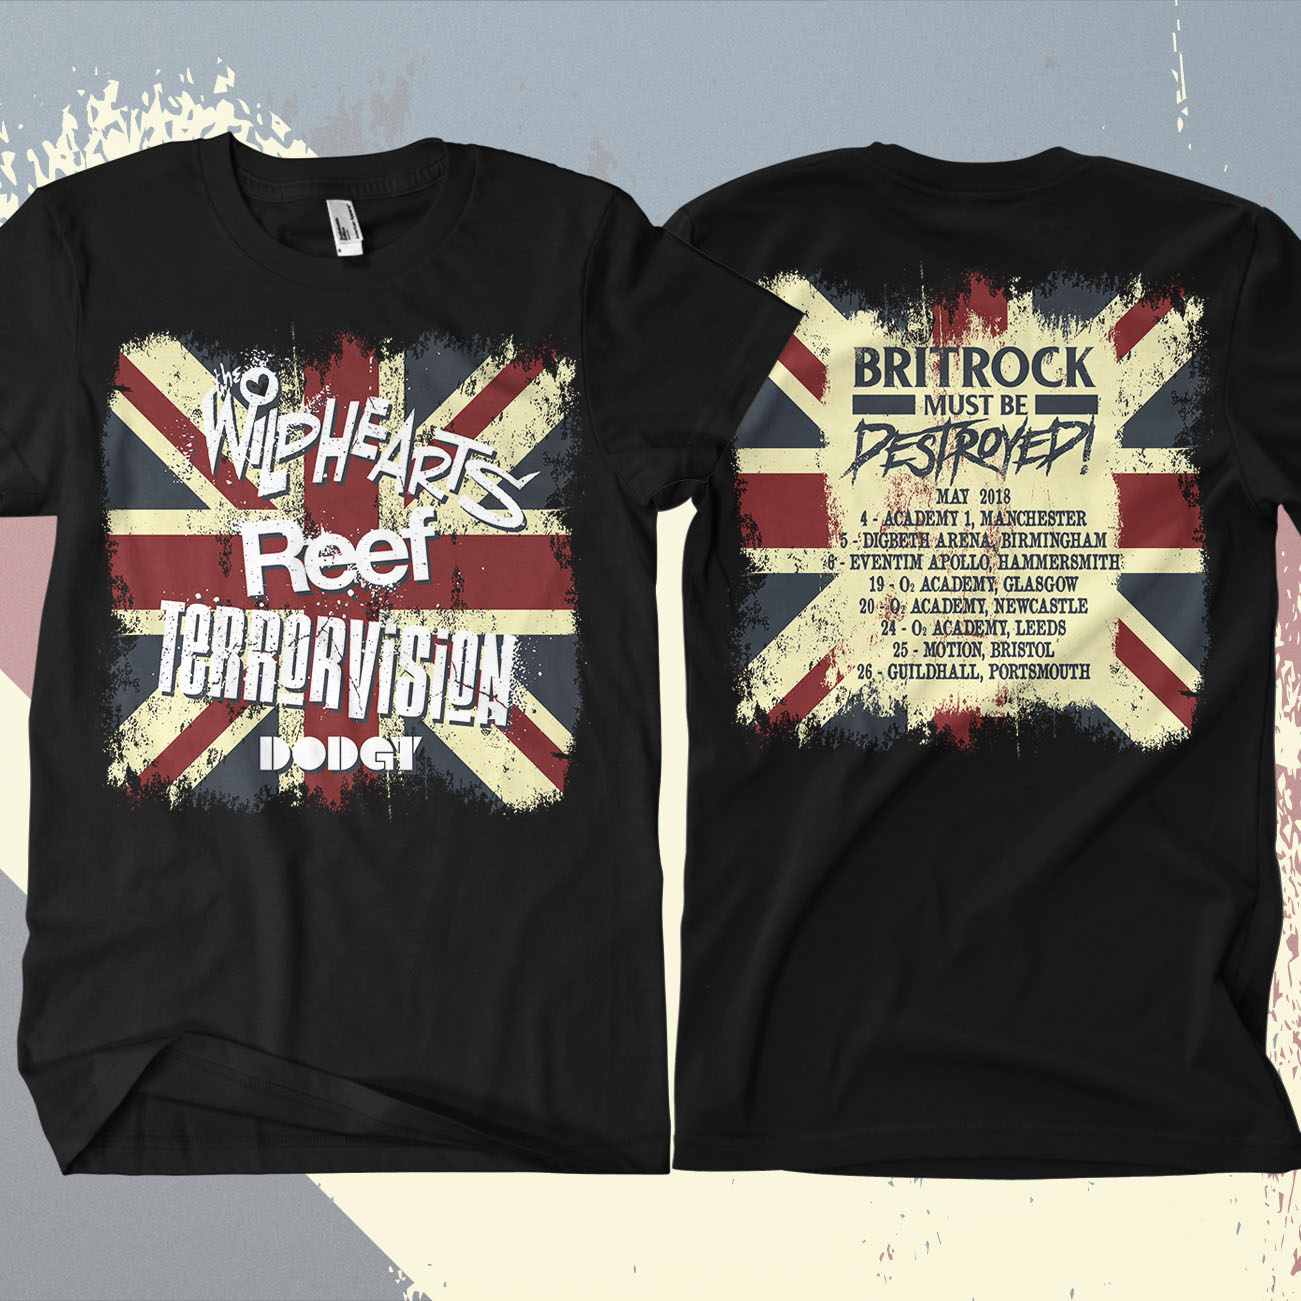 The Wildhearts - 'Britrock Must Be Destroyed' Black UK Tour T-Shirt - The Wildhearts